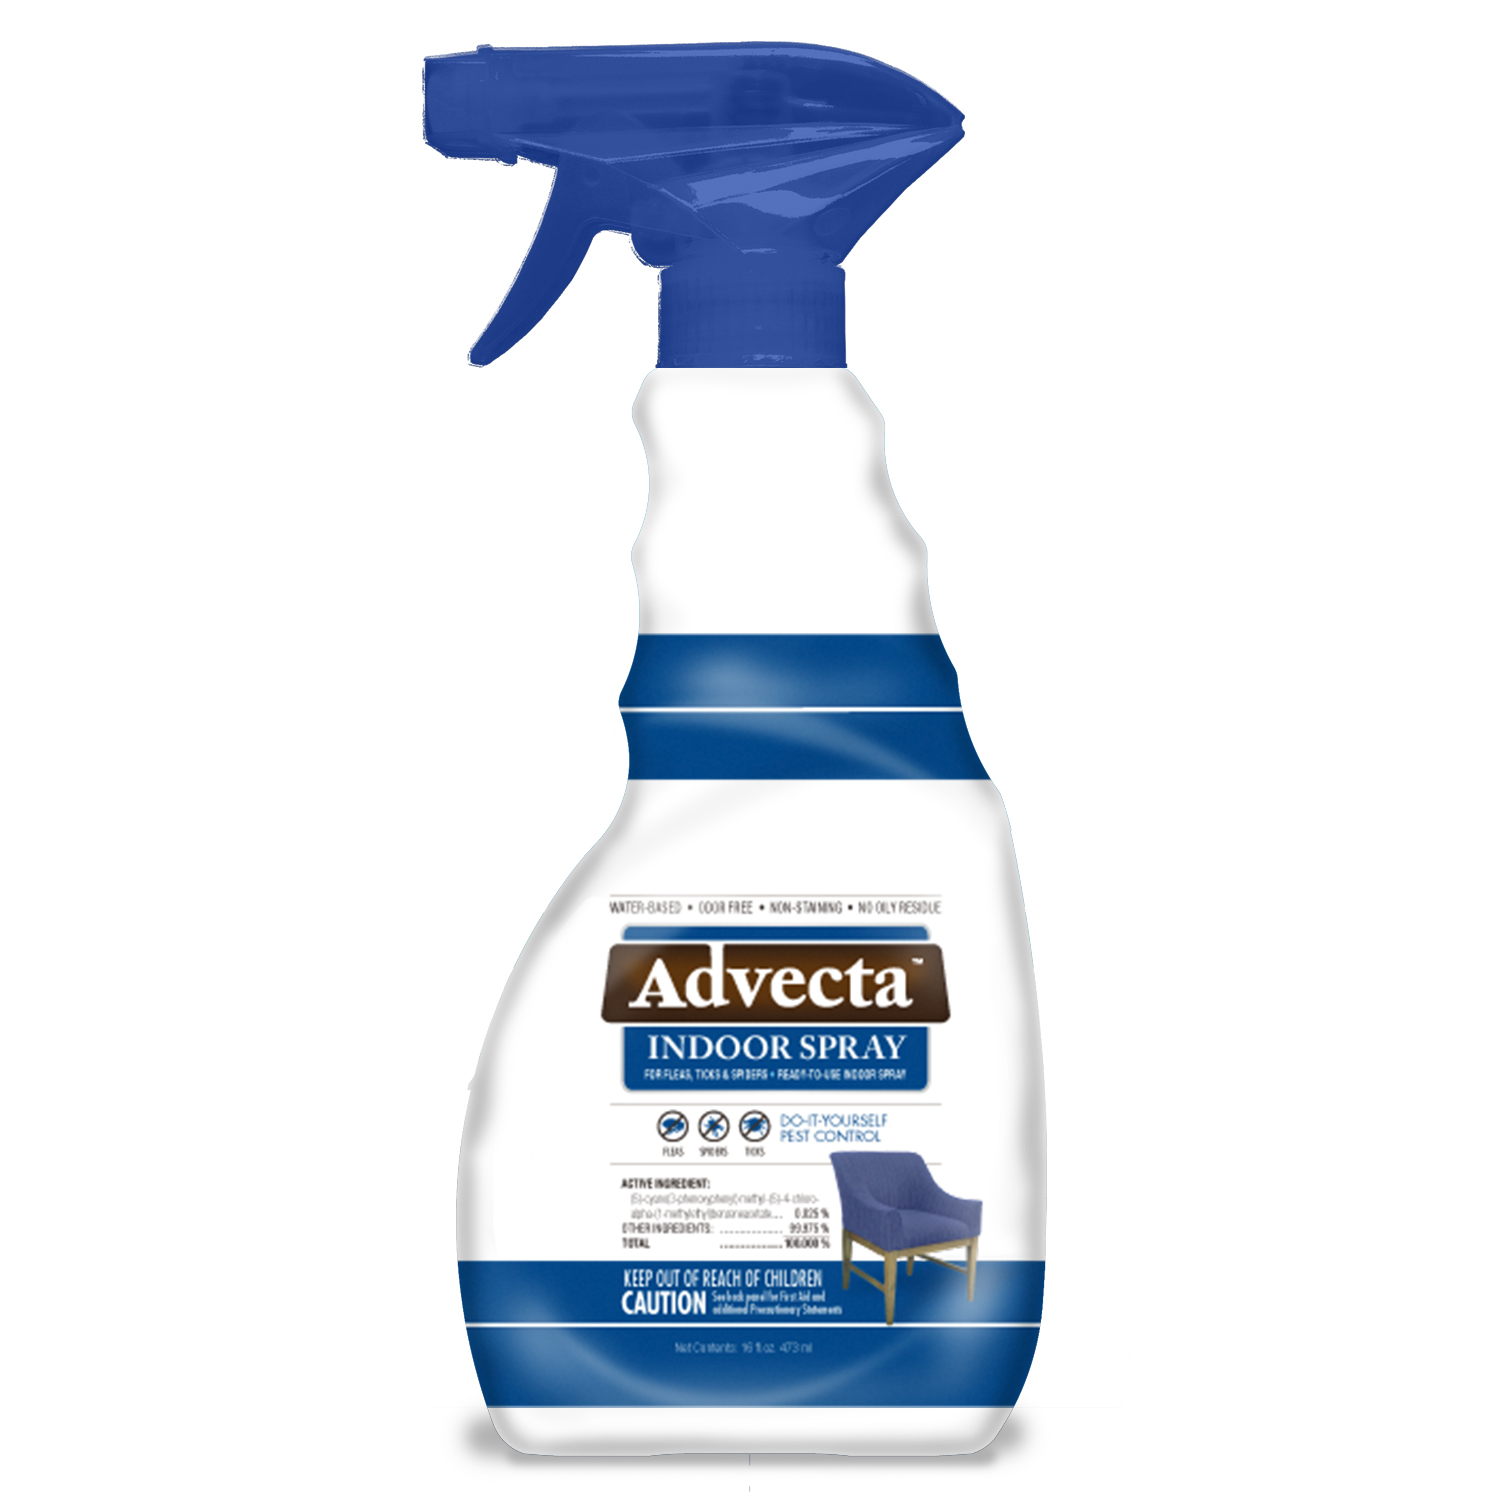 Advecta Indoor Fleas, Ticks, and Spiders Control Spray by PETIQ